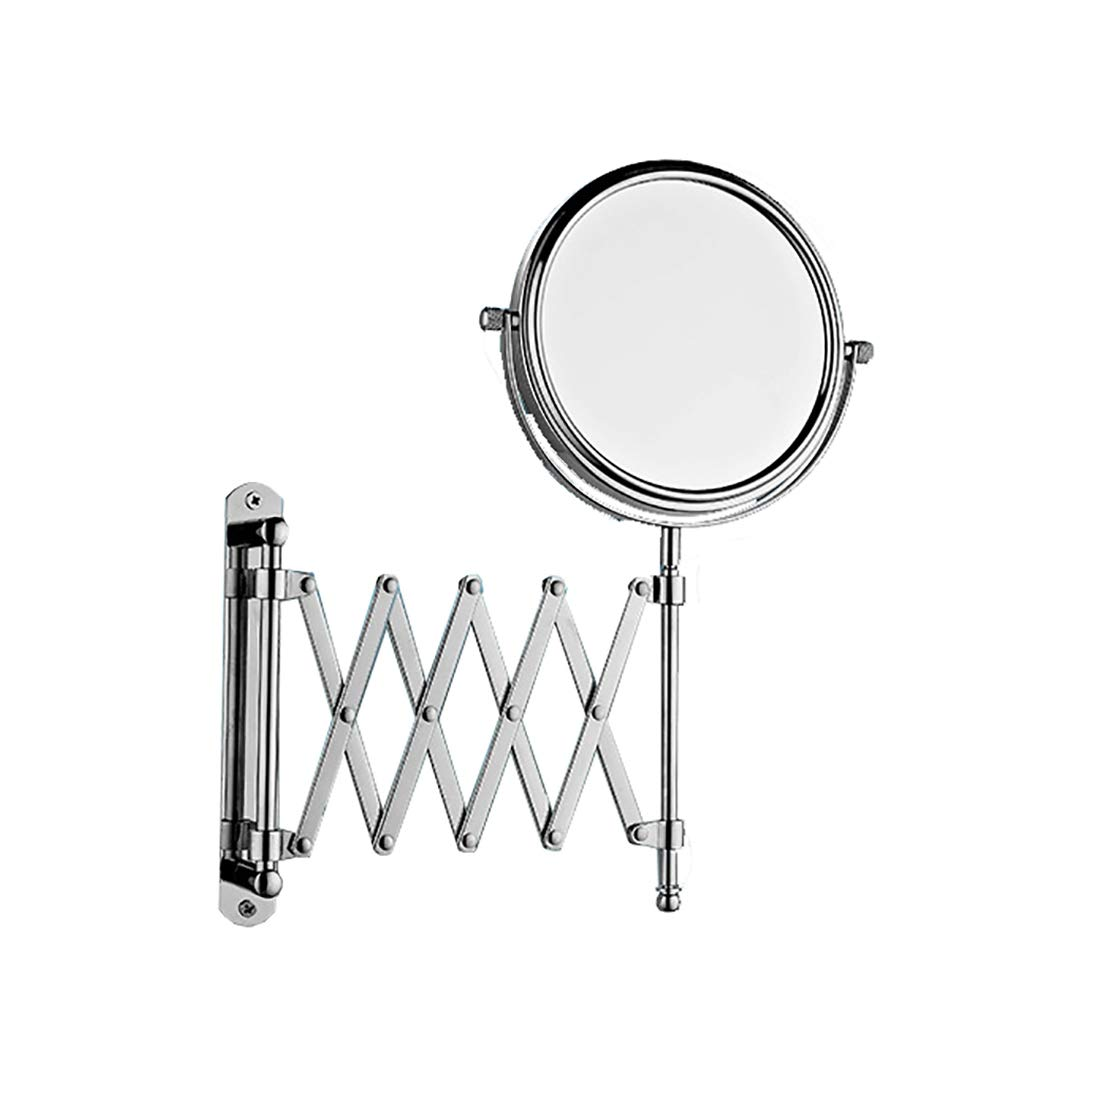 ZfgG Large Wall Mounted Extension Vanity Mirror 1x 3X Magnification - Maximum Extension Bathroom Bedroom - Stainless Steel Chrome Finish - Swivel Head Design (Size : 6 inches)